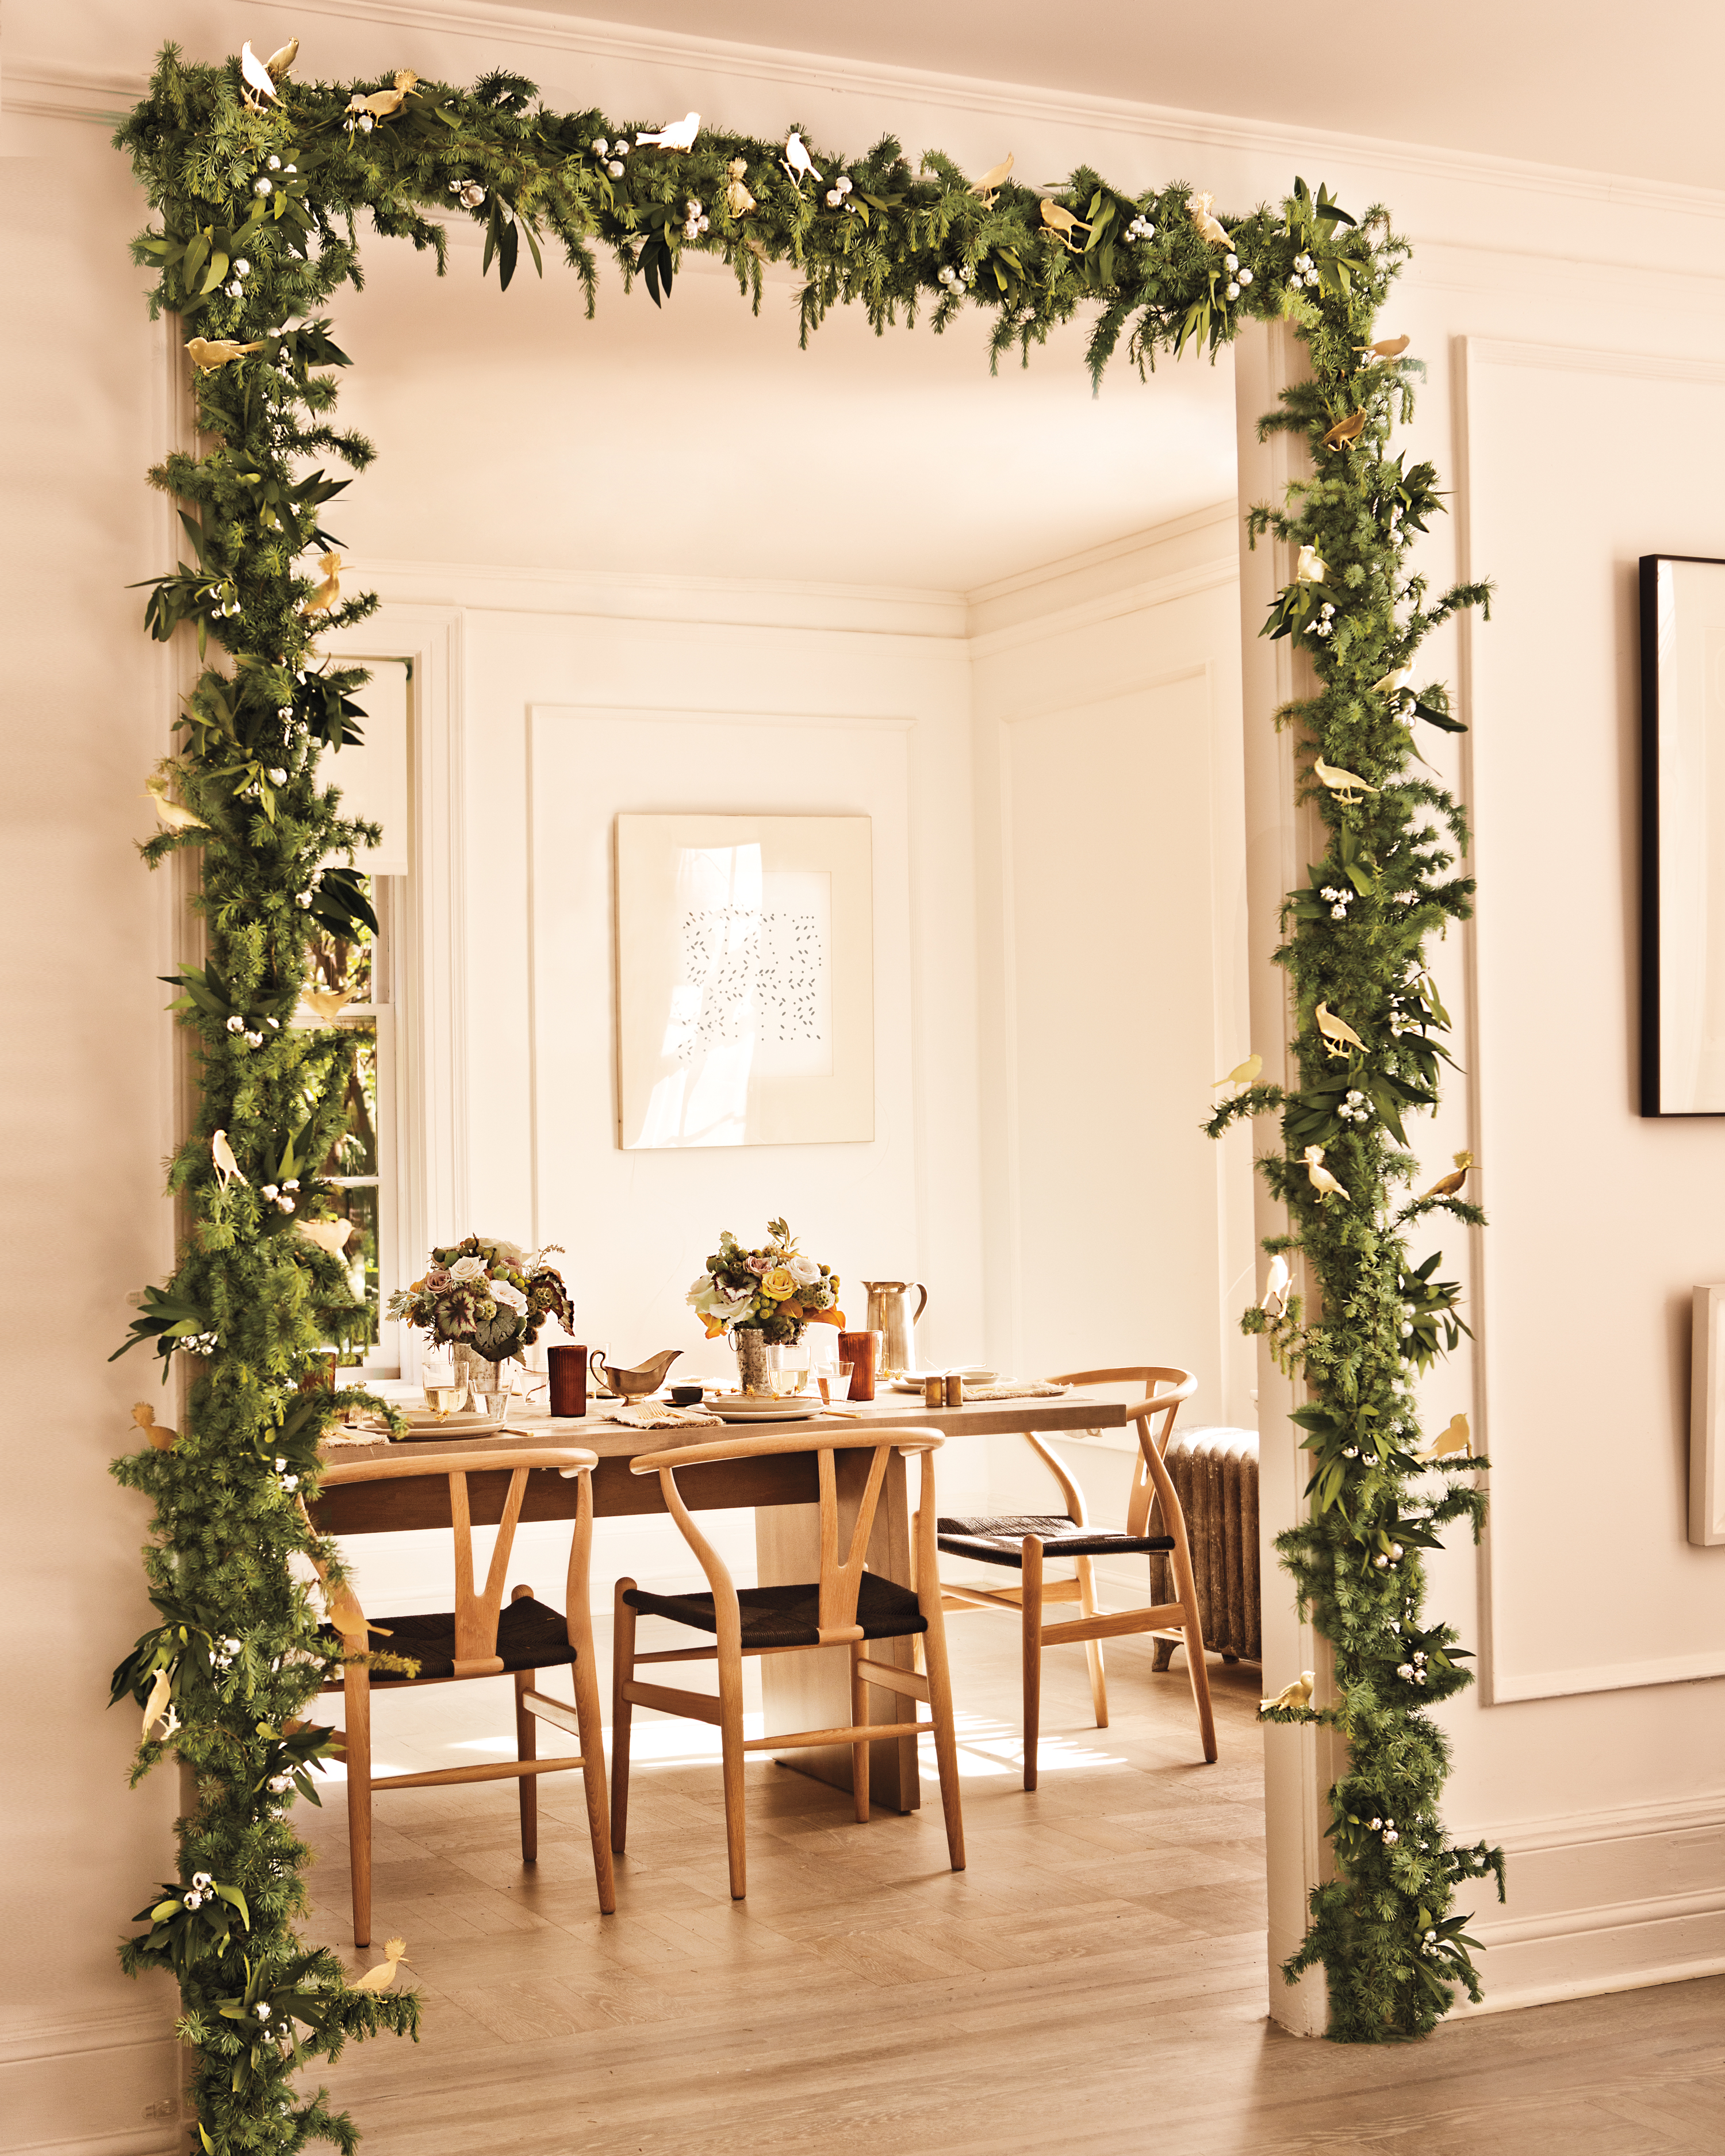 12 Christmas Garlands to Deck the Halls in Merry Style